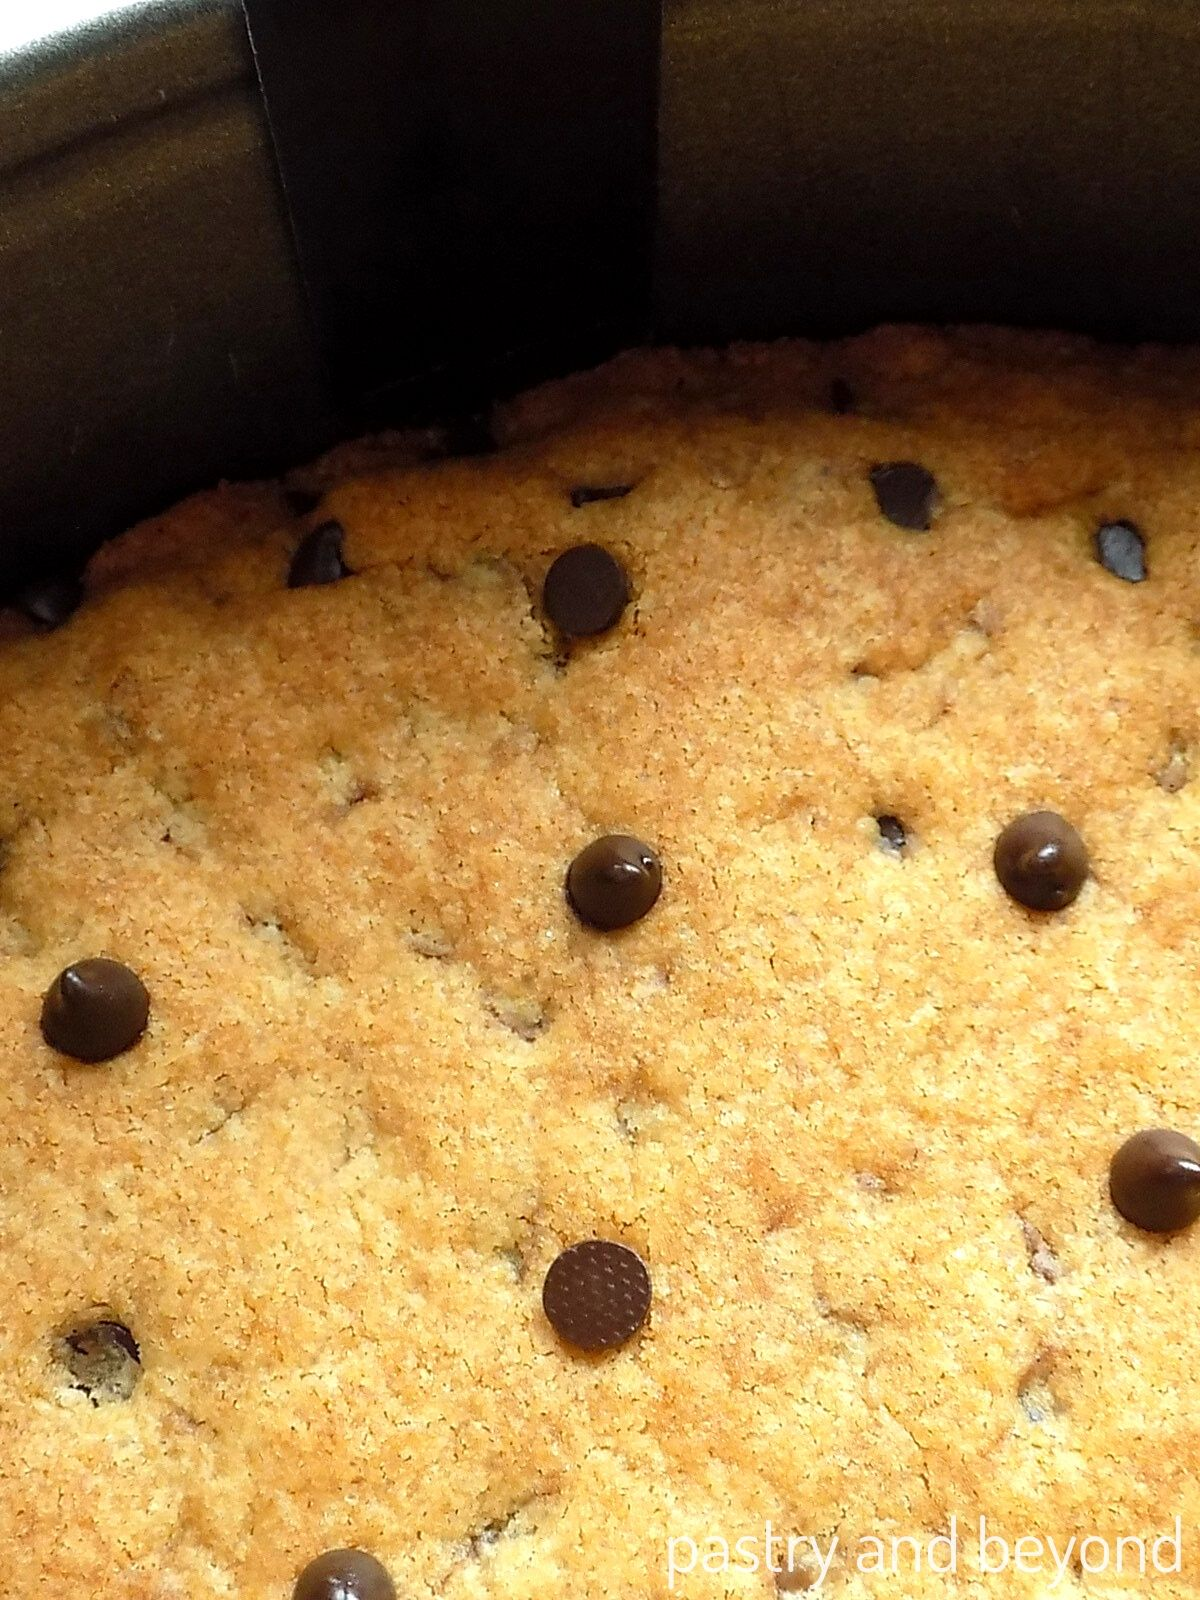 Loosening the cookie cake from the pan with a thin, small spatula.